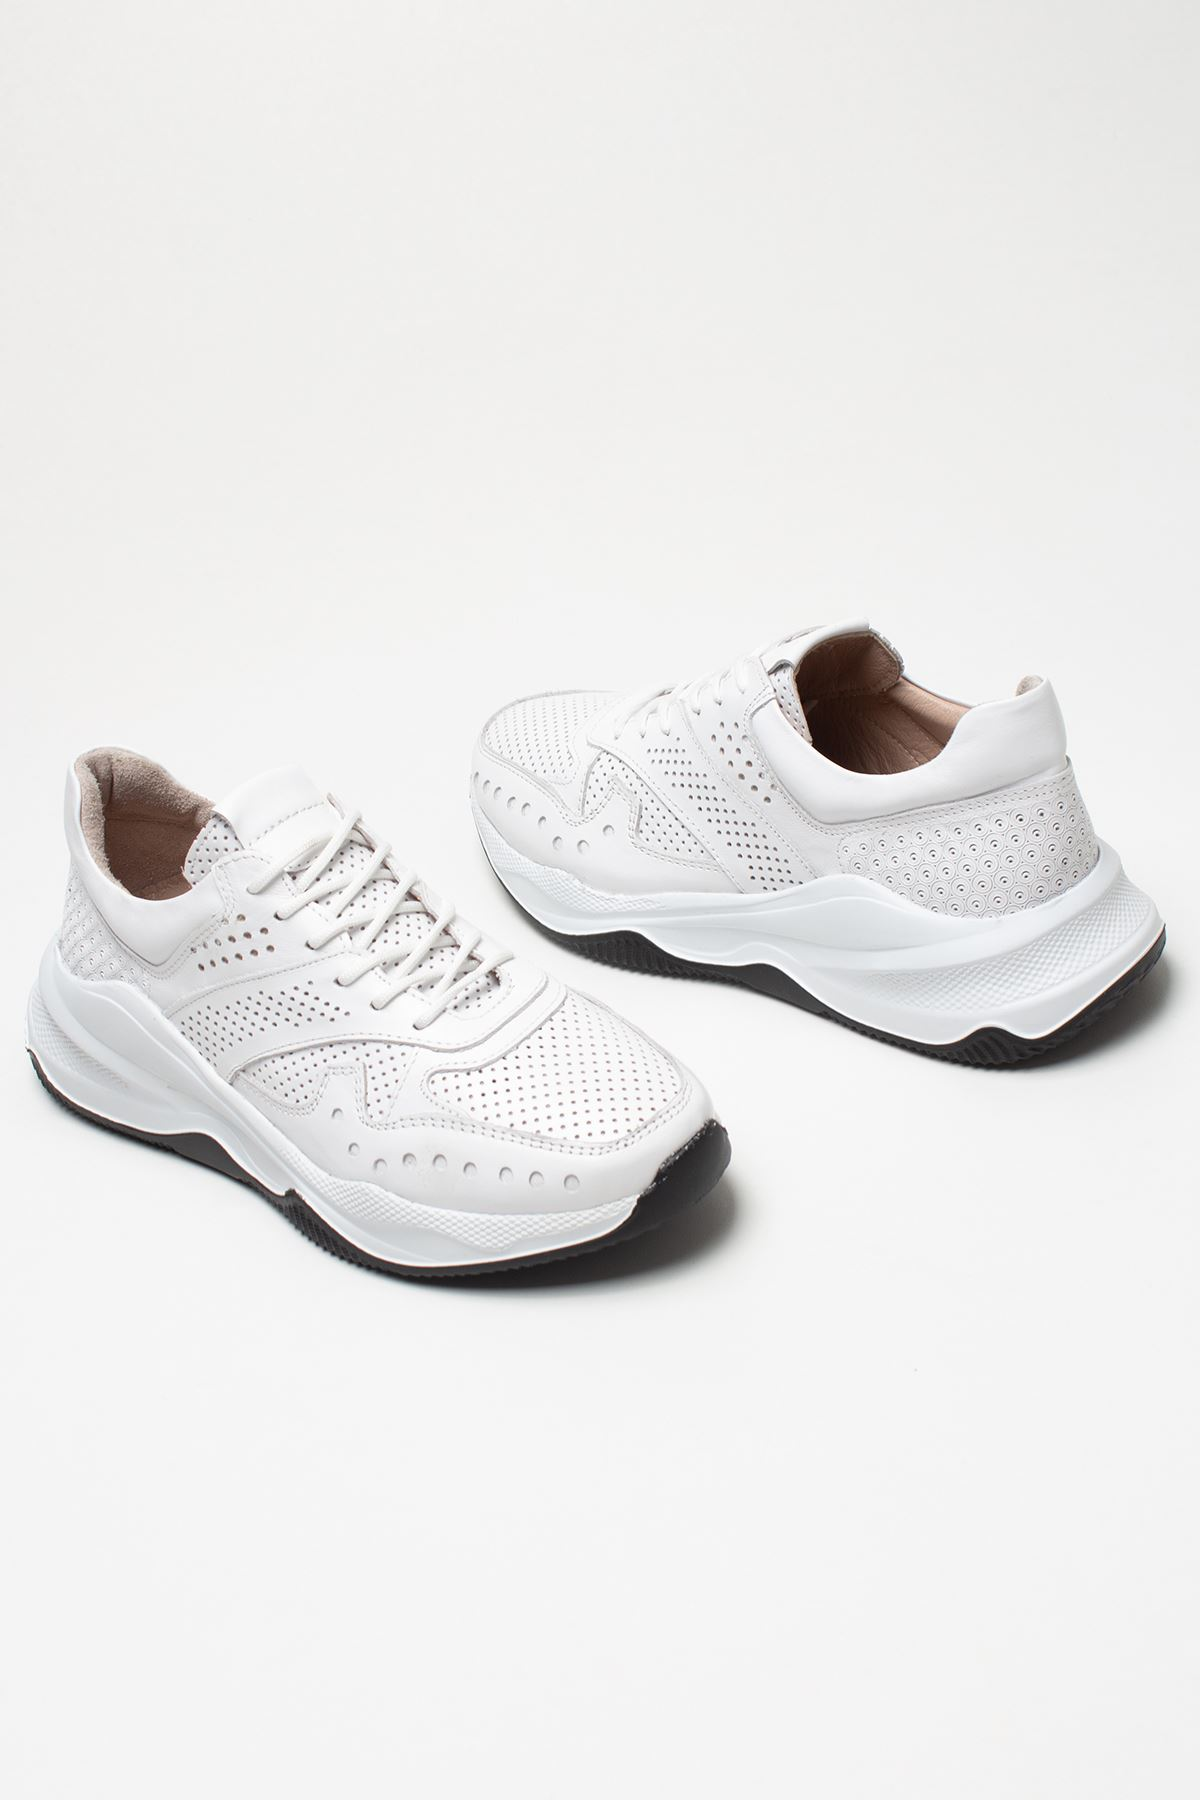 Nixus White Genuine Leather Women Sneakers